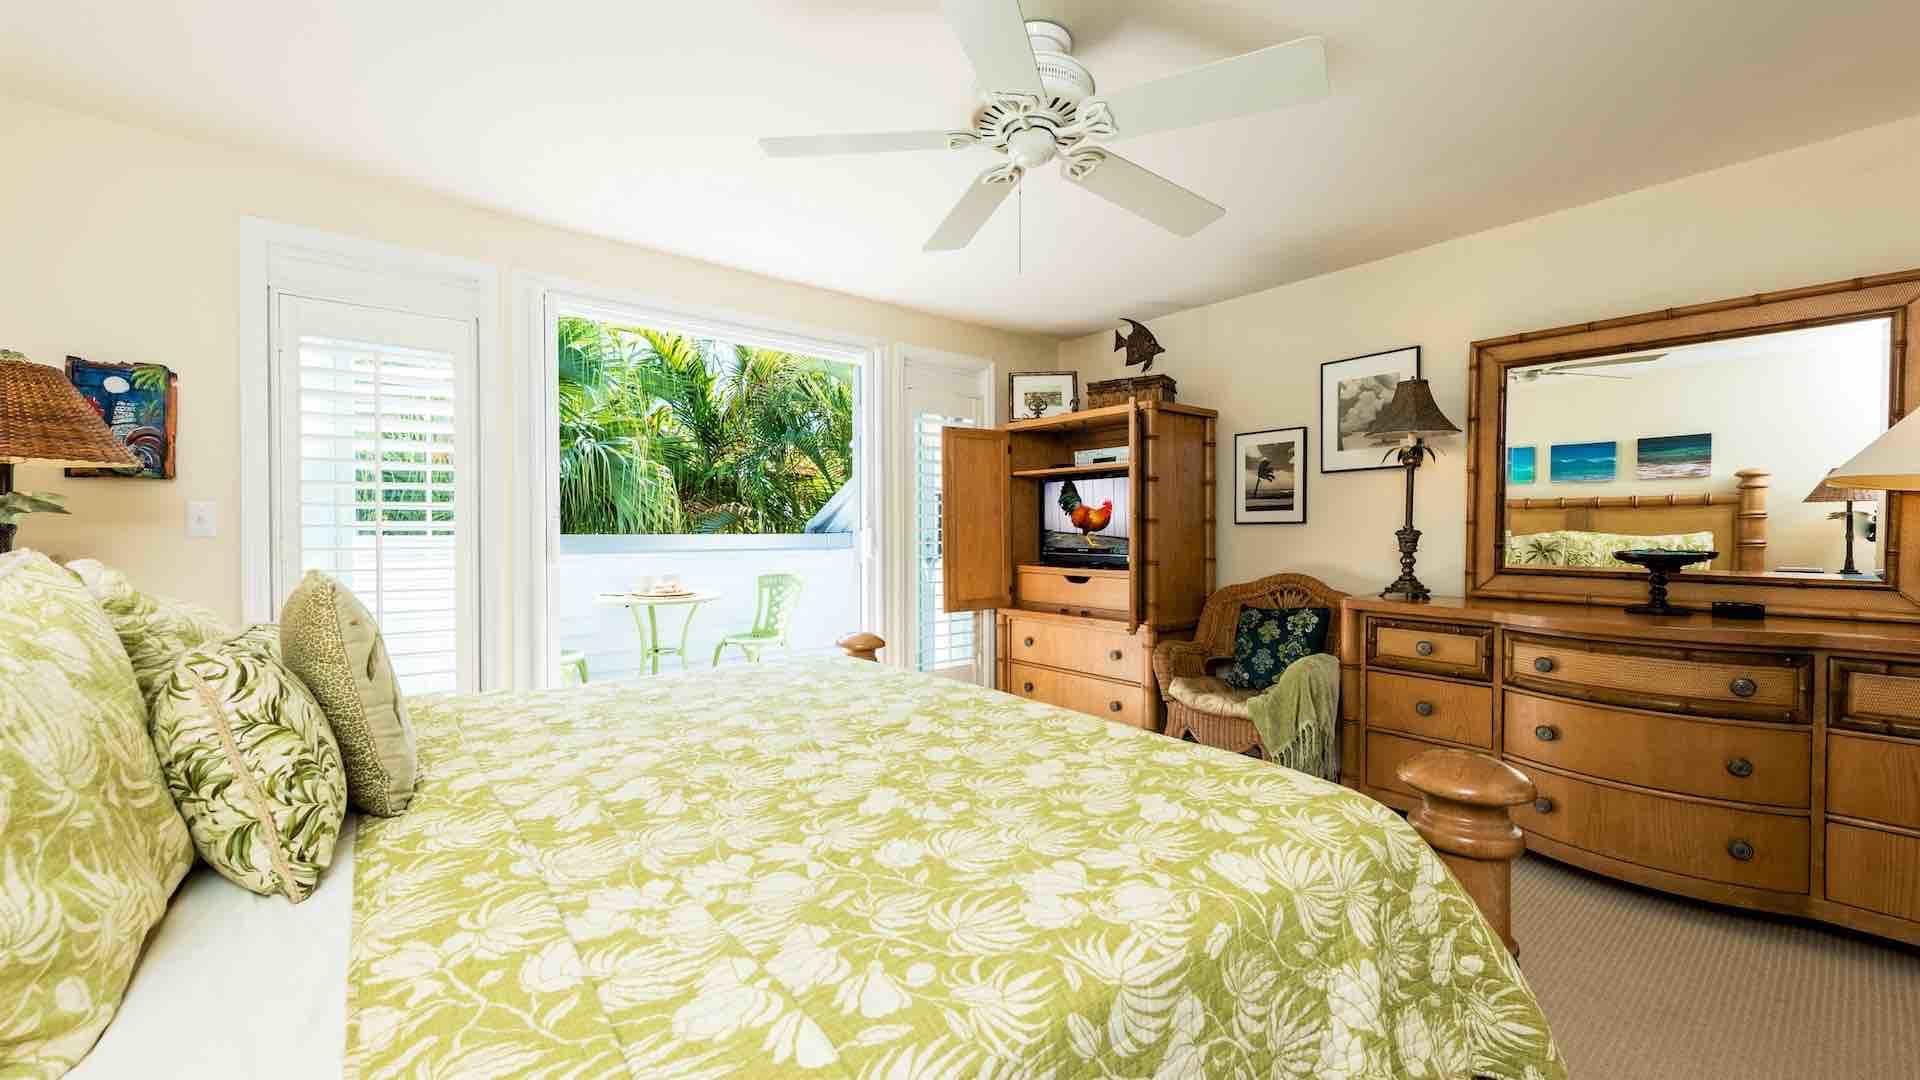 The entire second floor is the master suite...